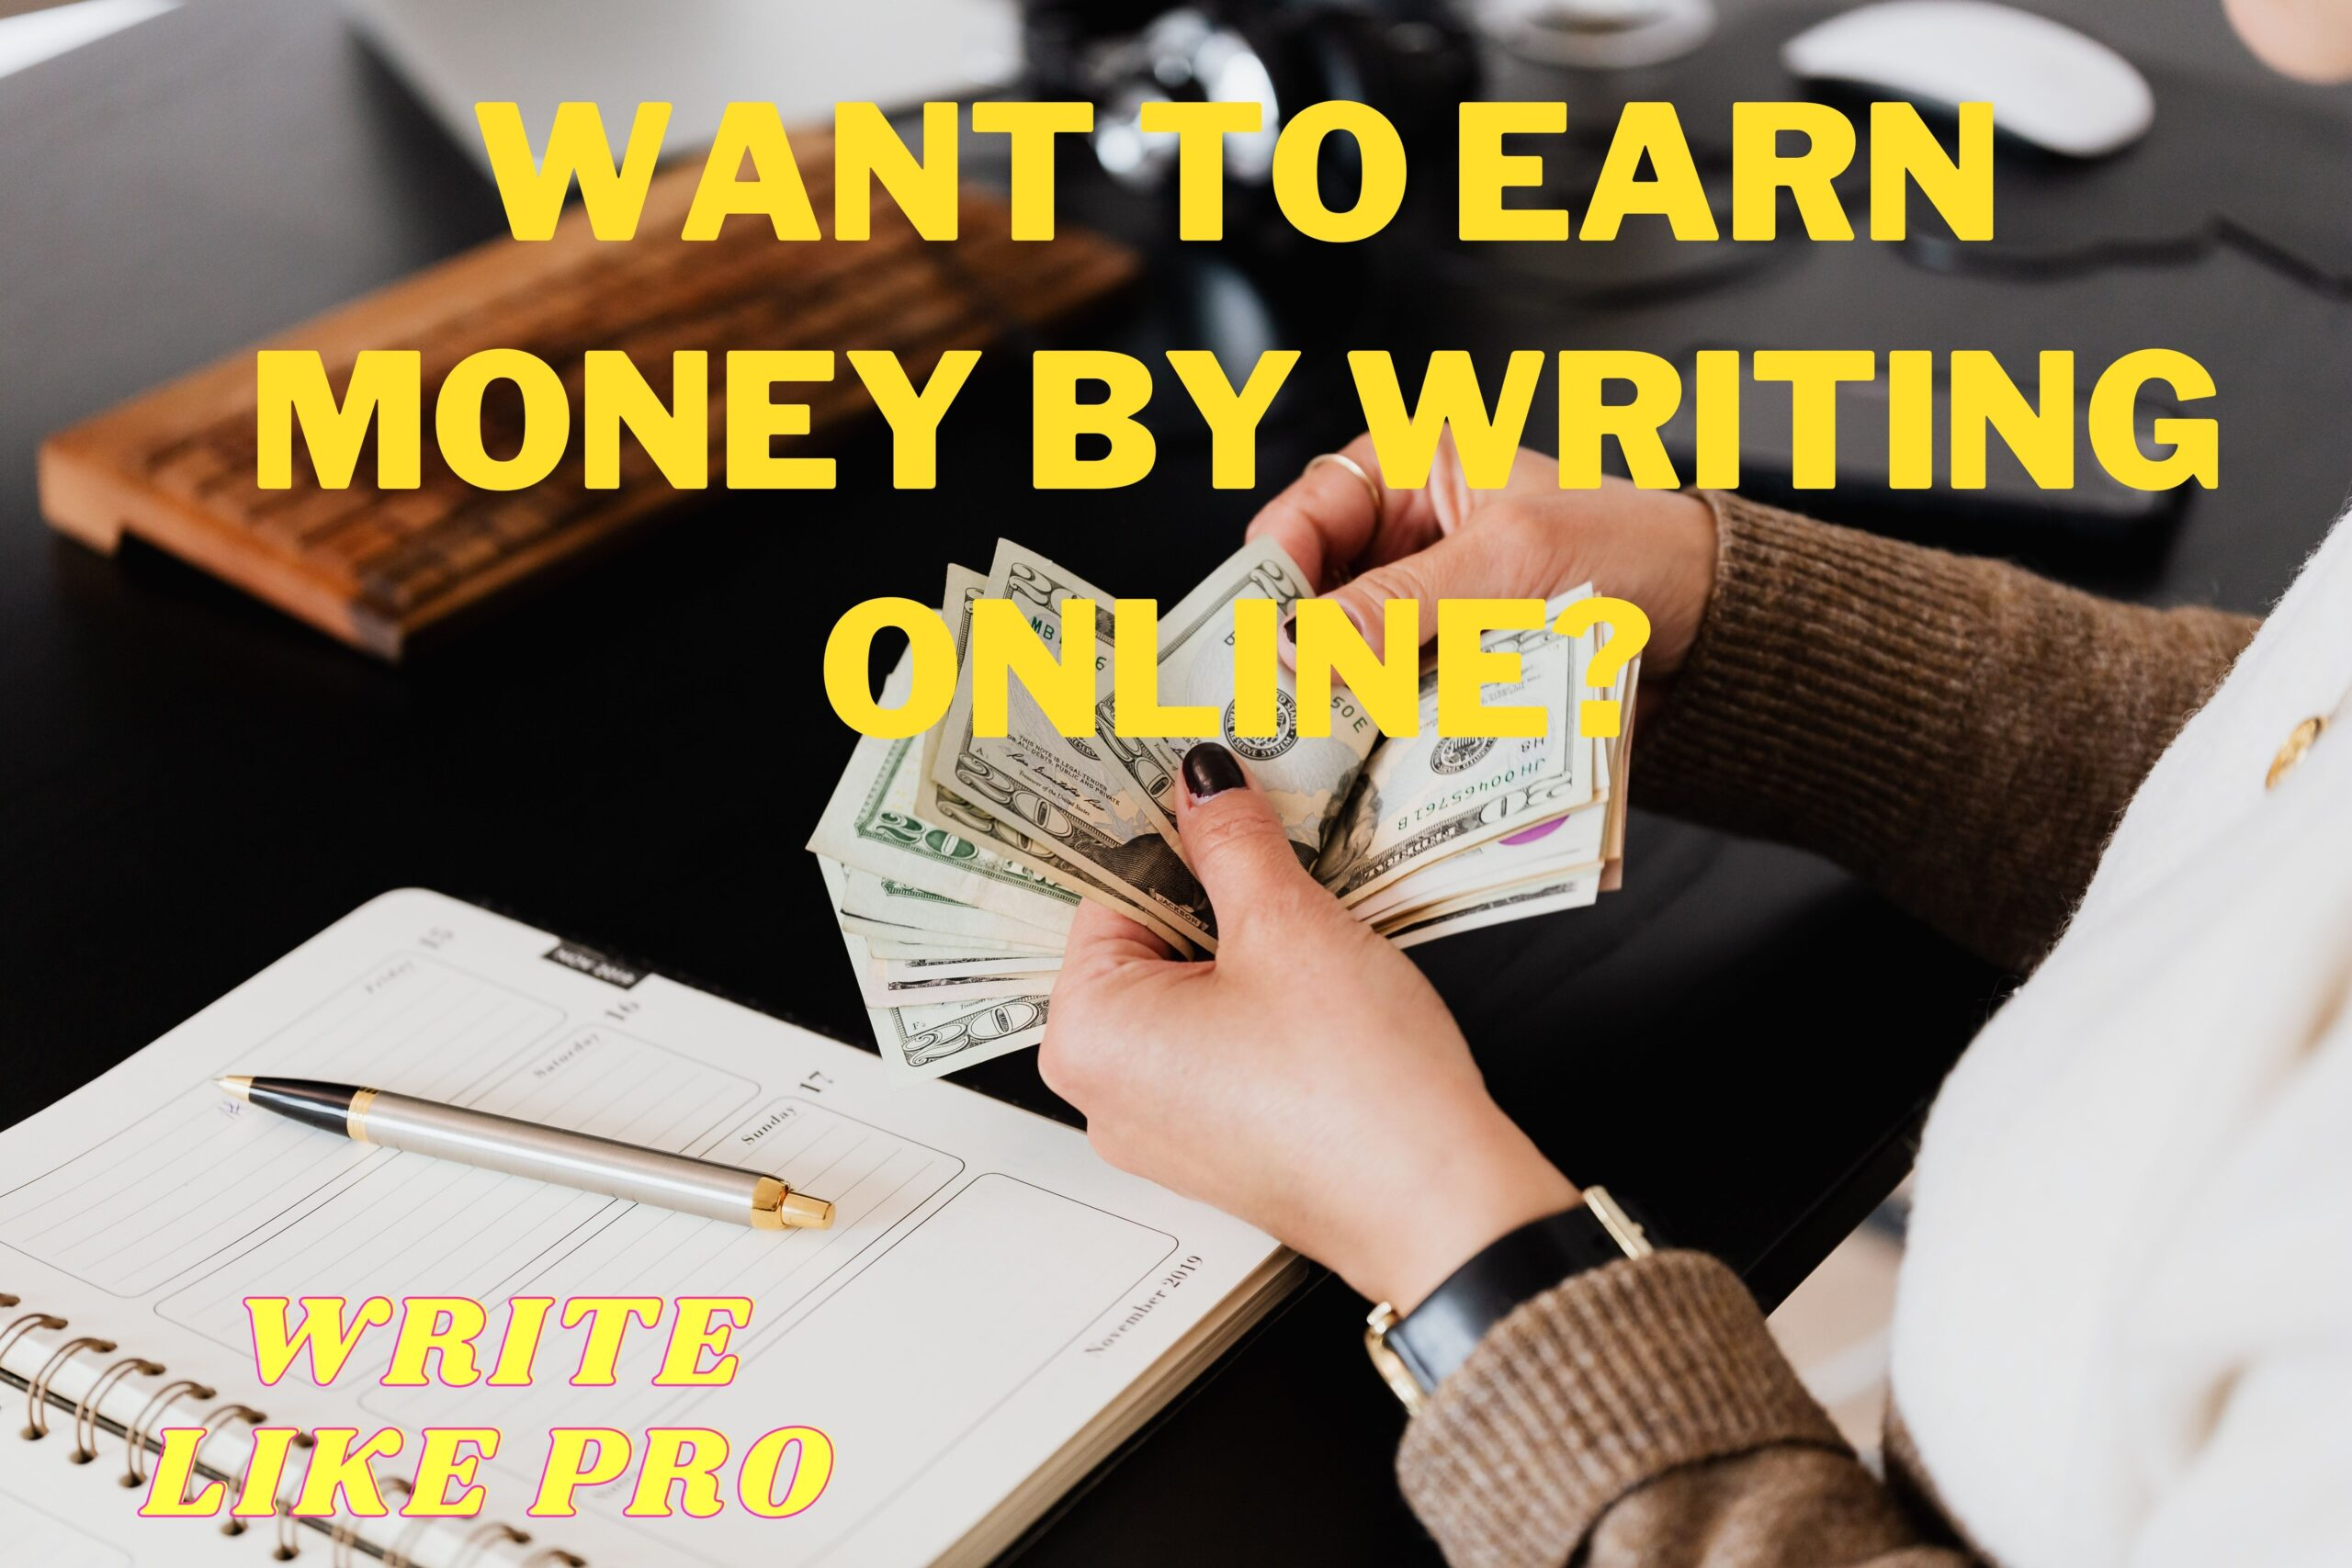 HOW TO START EARNING MONEY BY WRITING ONLINE? TOP 3 PROVEN WAYS TO HELP YOU OUT!